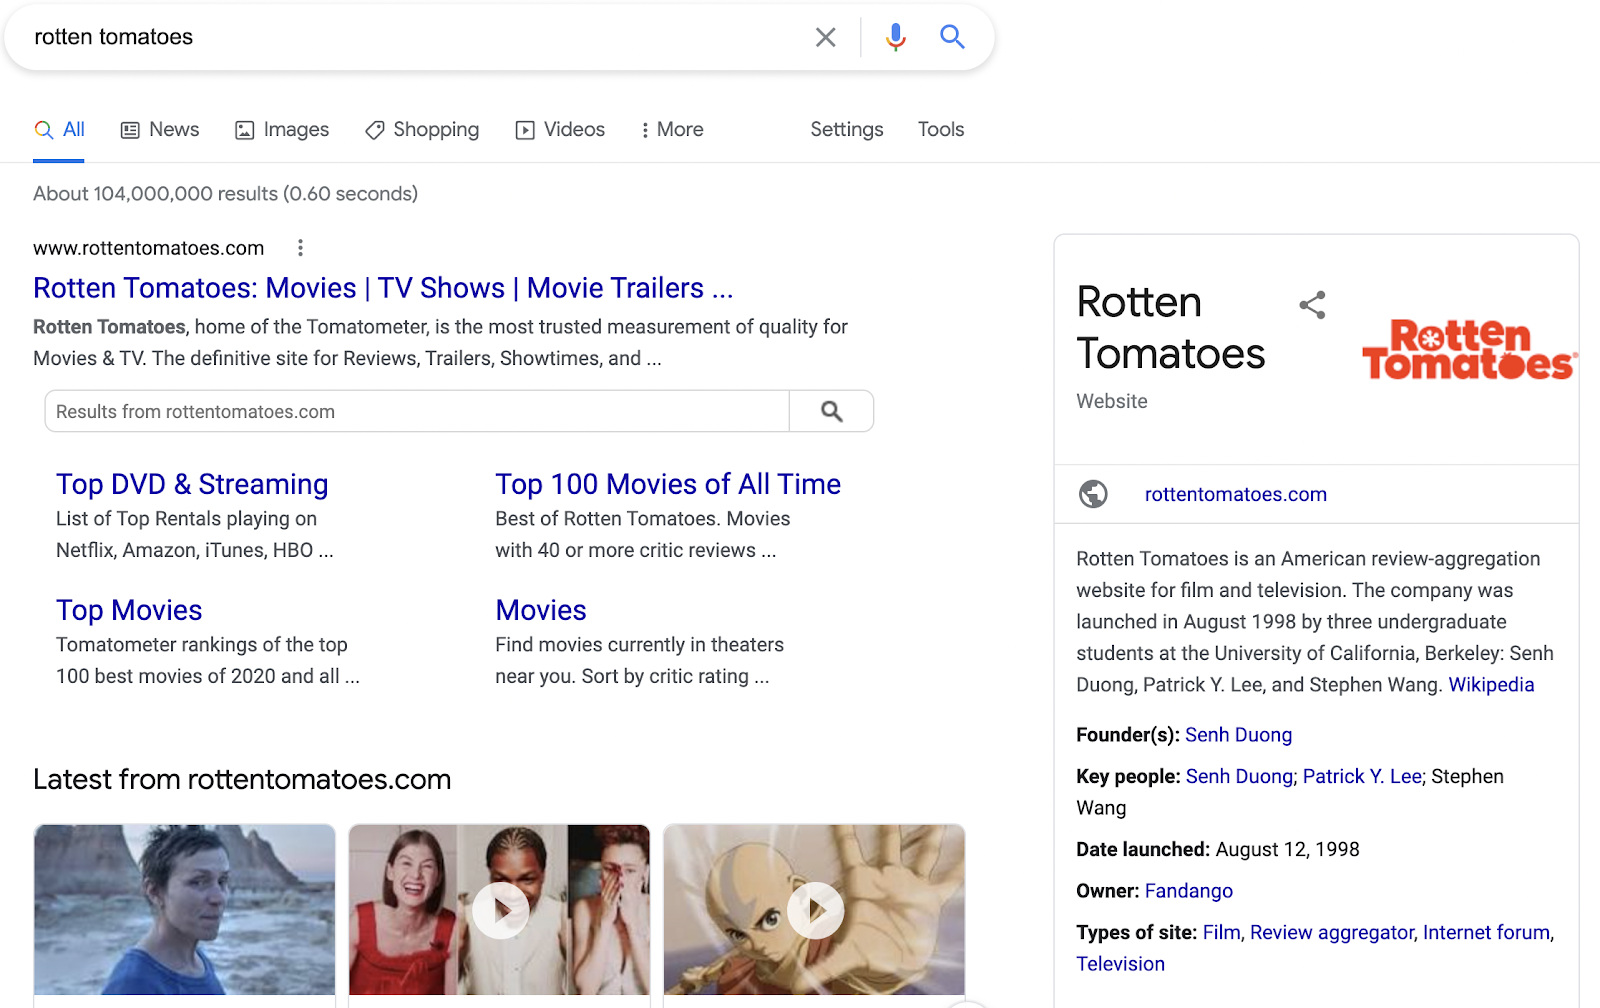 Keyword Research for Search Intent